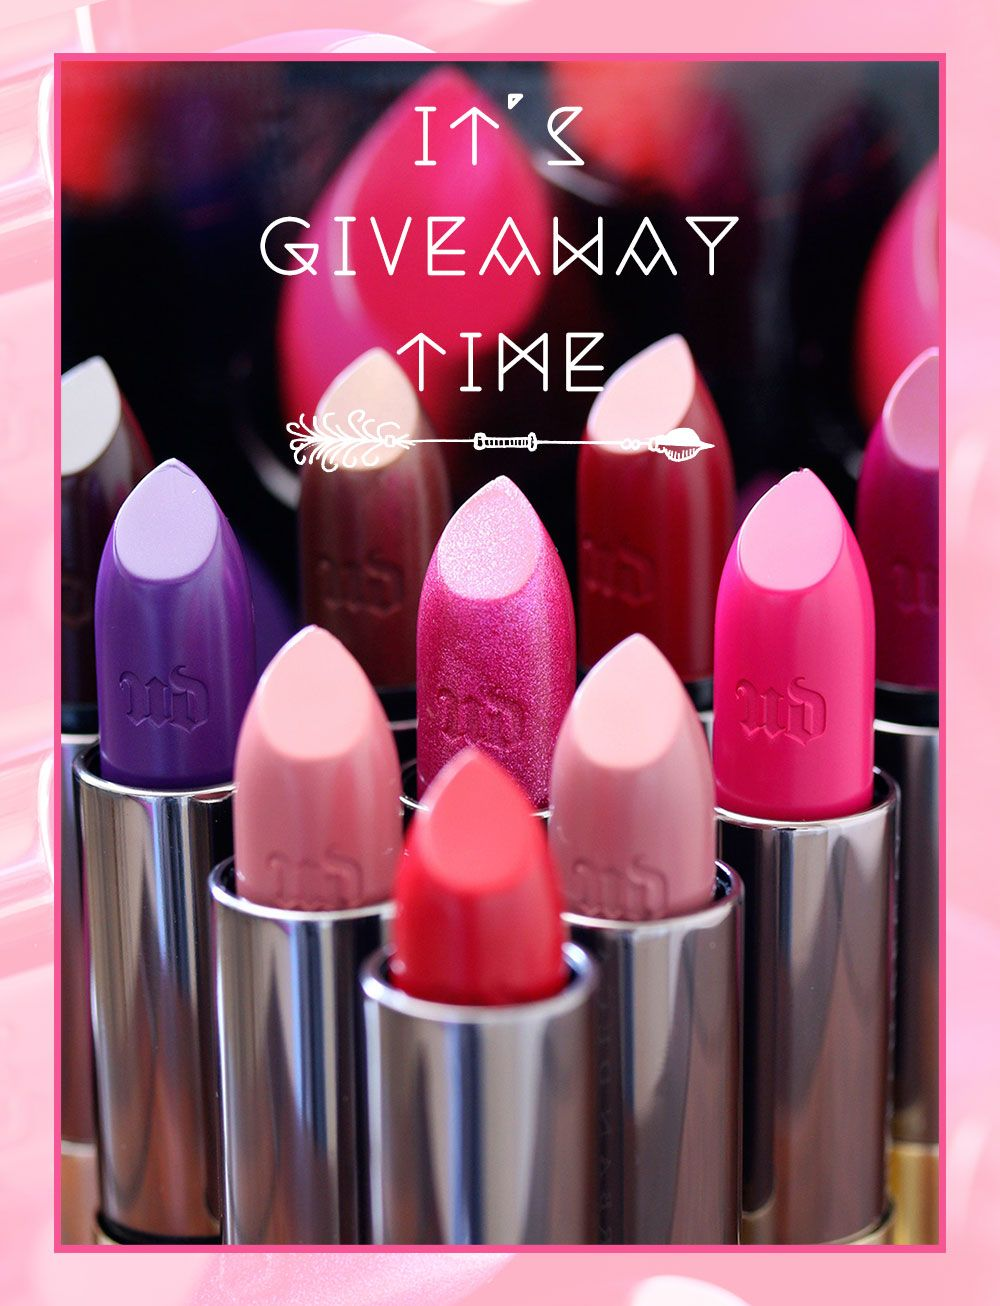 Leave a Comment for a Chance to Win a 50 Sephora EGIFT